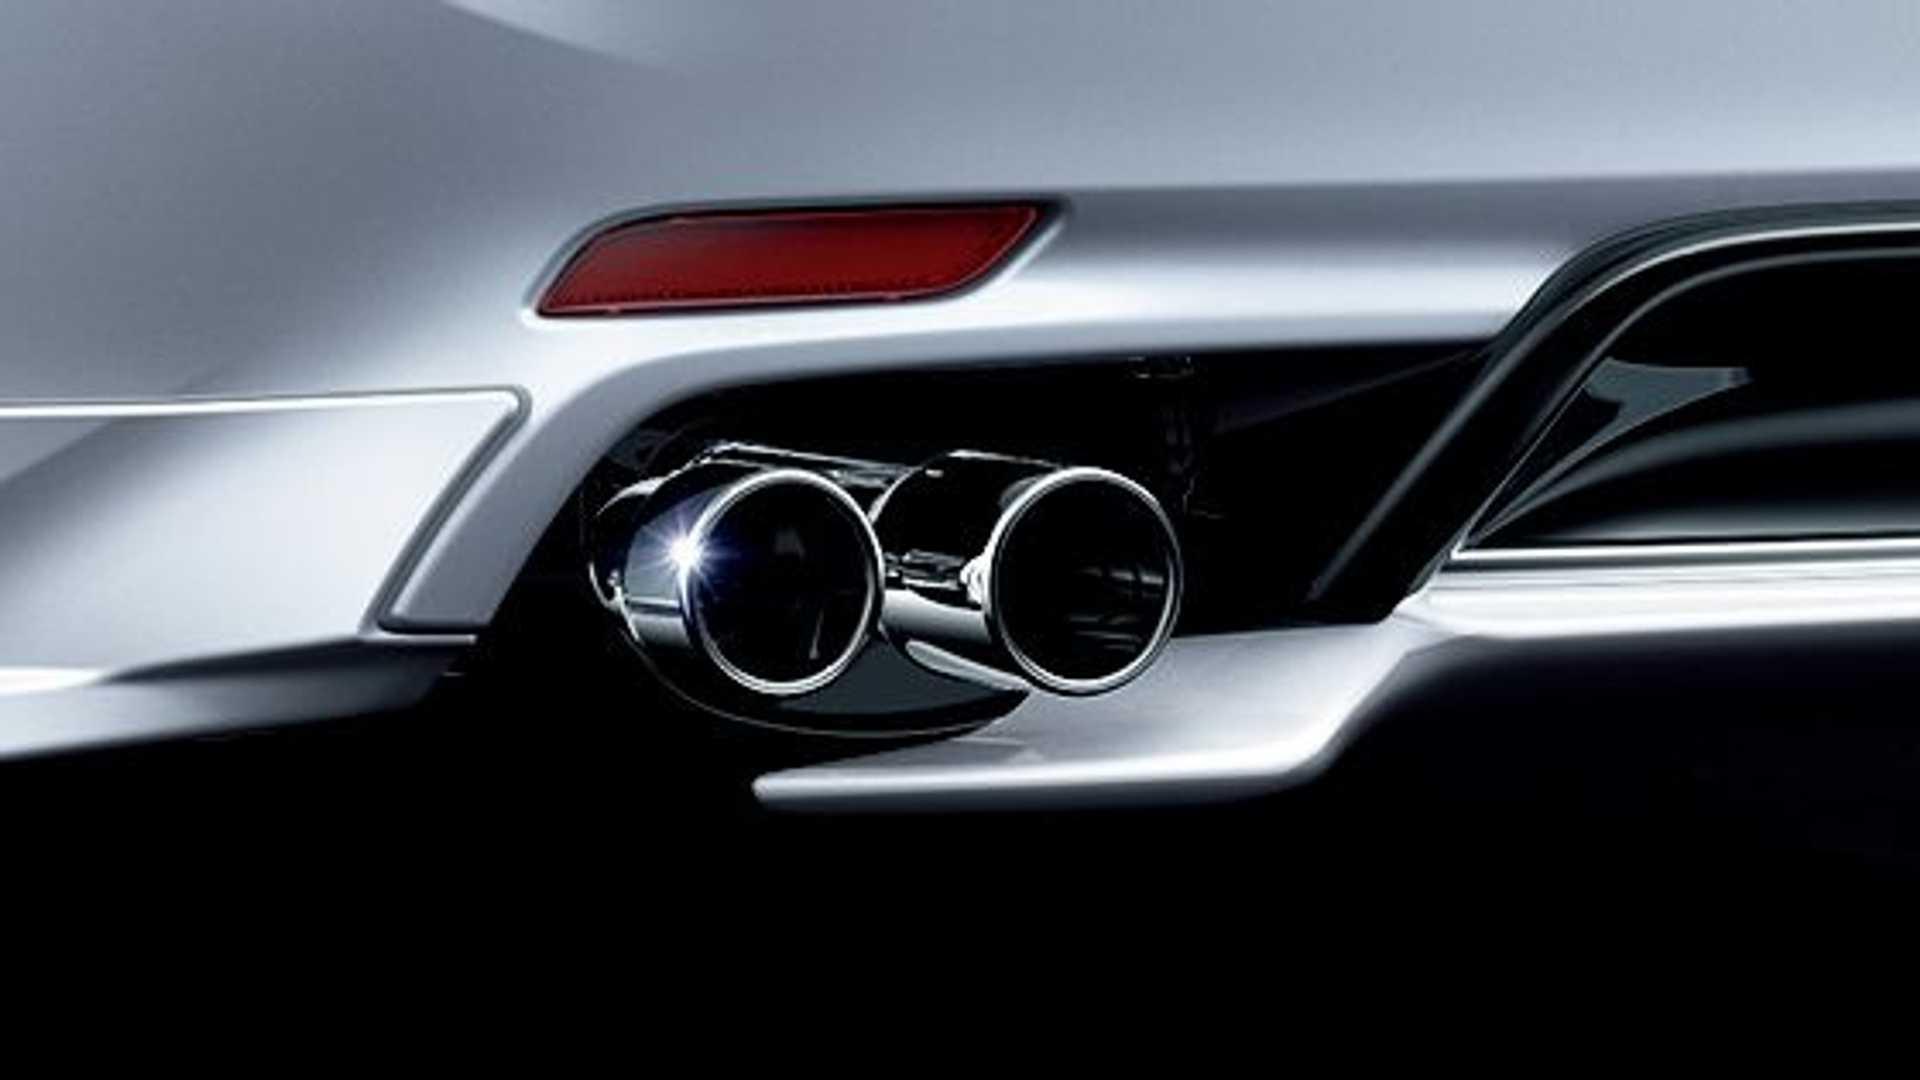 toyota-camry-gr-exhaust-detail